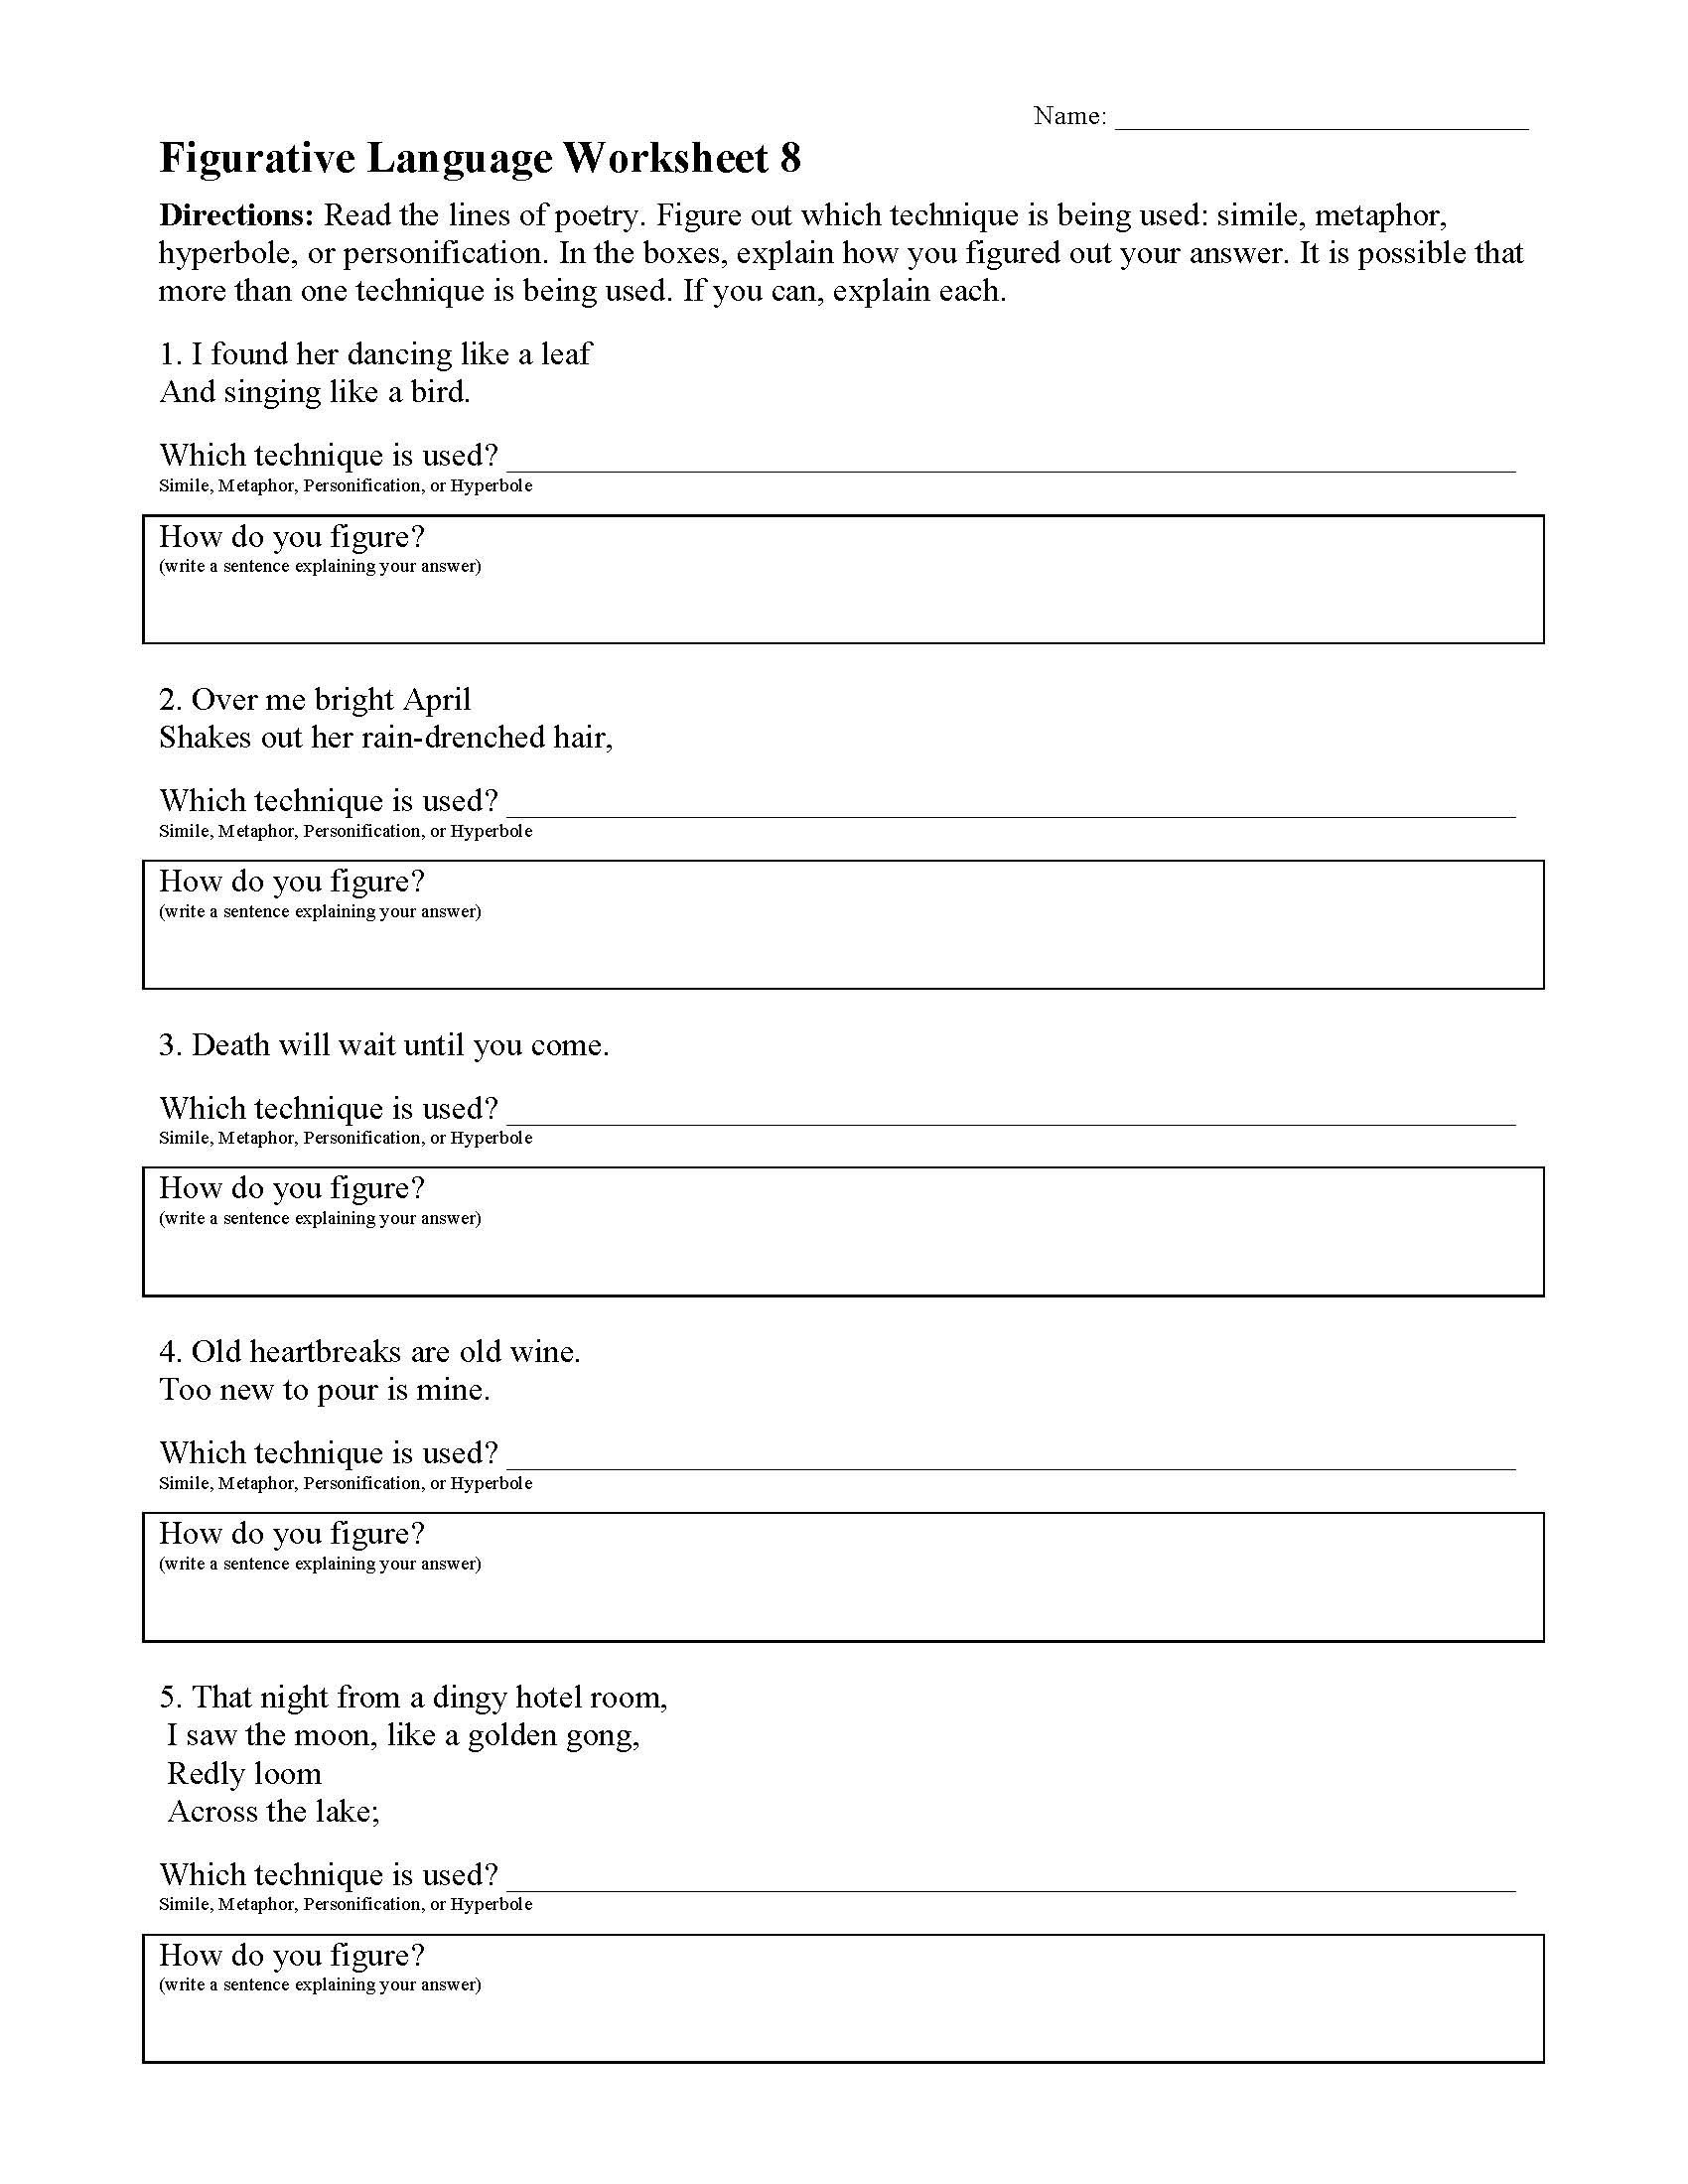 figurative language worksheet 08 01